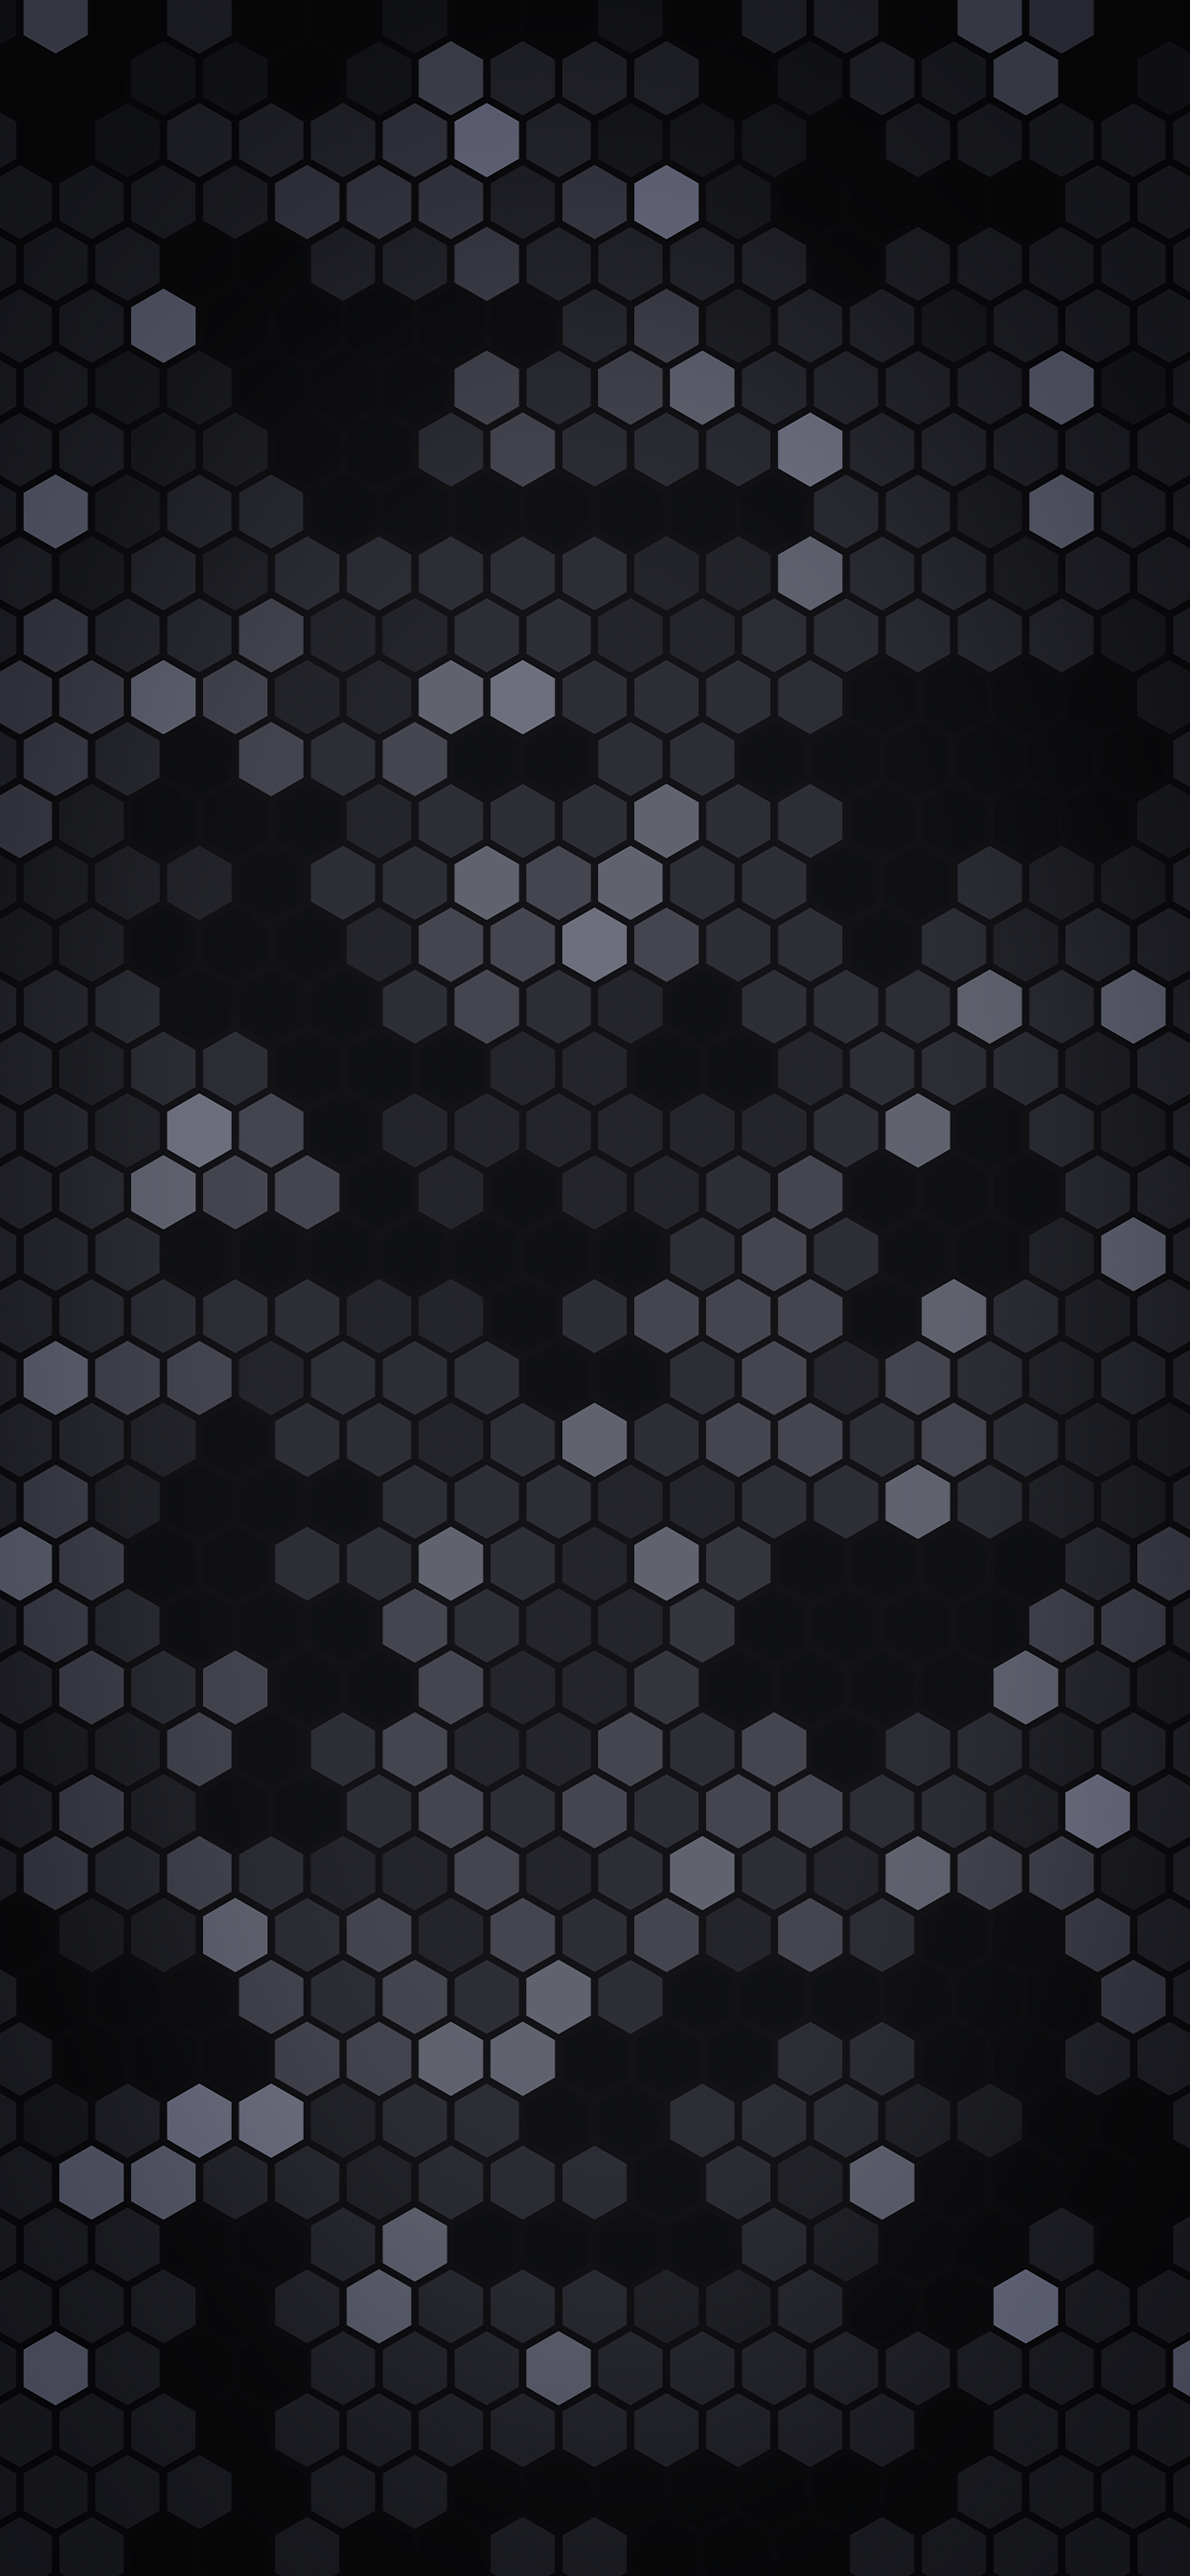 Swarm2 dark pattern iphone wallpaper arthur schrinemacher